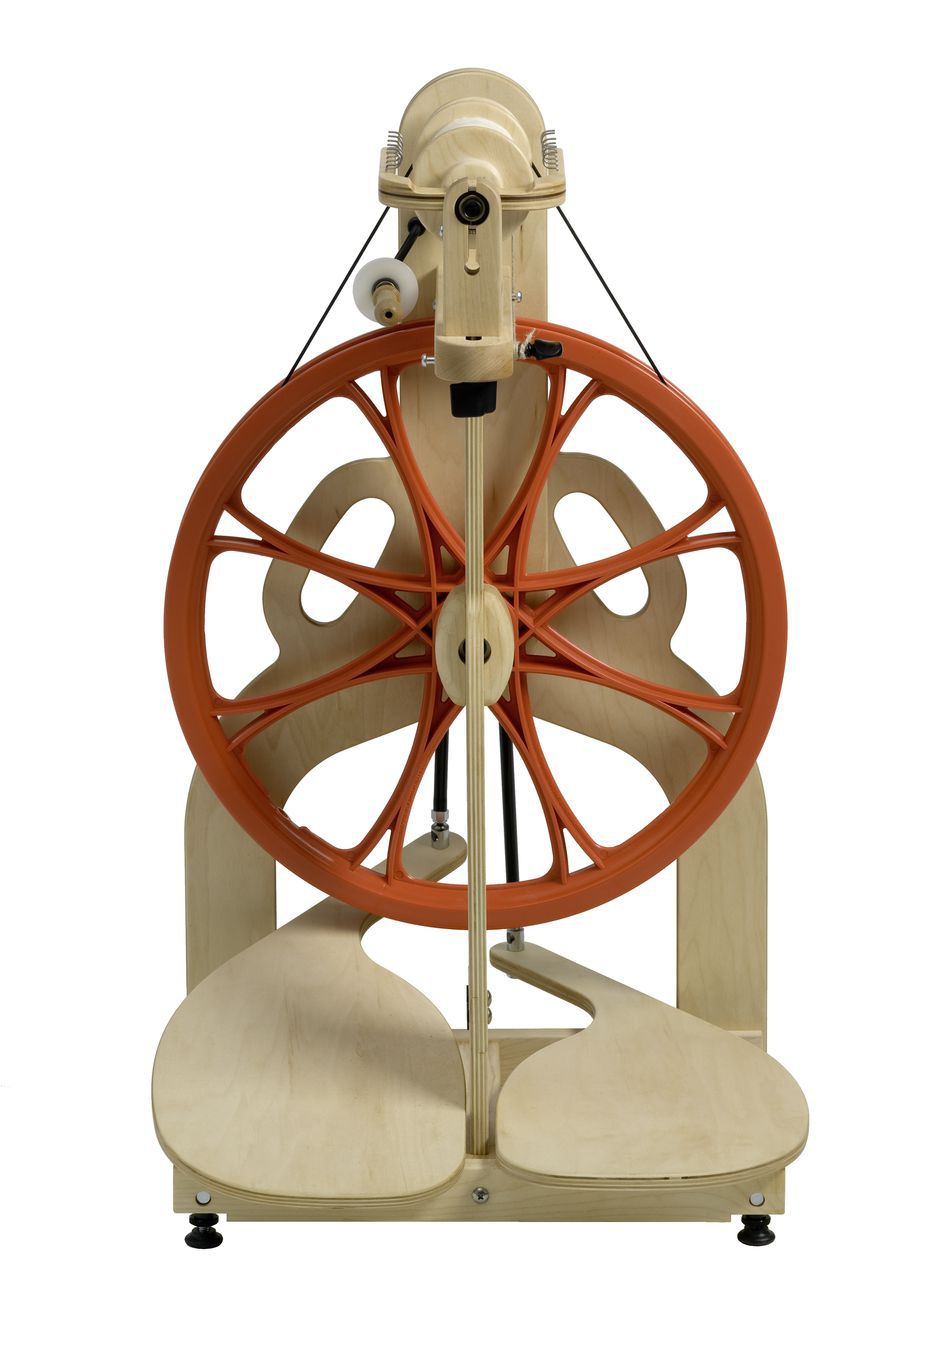 The Wheel Of Fortune Tarot Card Meaning In Readings The: Schacht Ladybug Spinning Wheel, Spinning Equipment